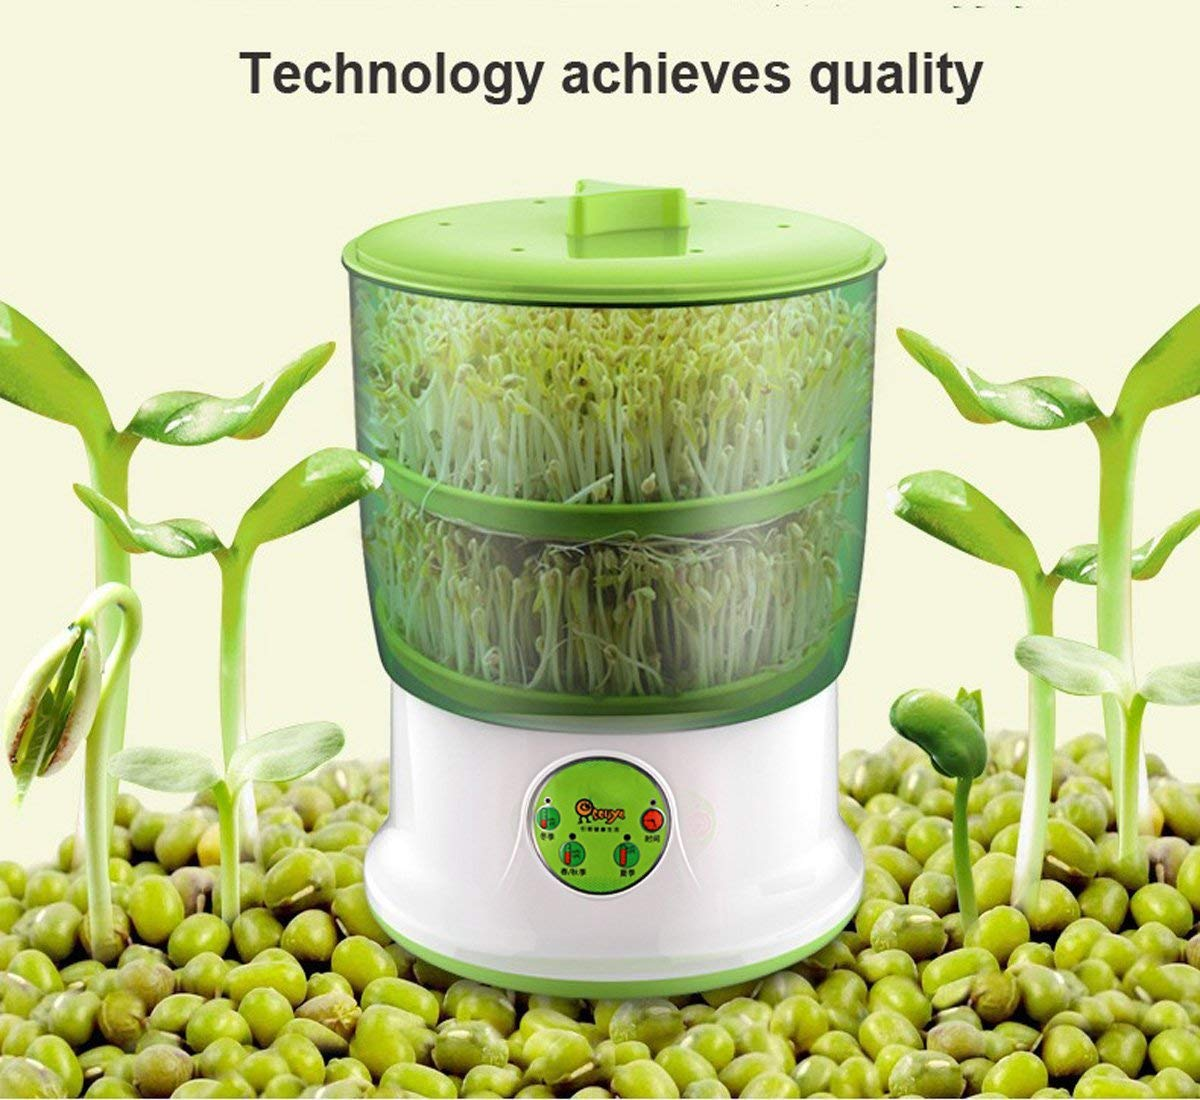 DOTSOG 110V Bean Sprouts Machine Food Grad PP Material Automatic Seed Sprouter Power-Off Memory Function Sprouter by DOTSOG